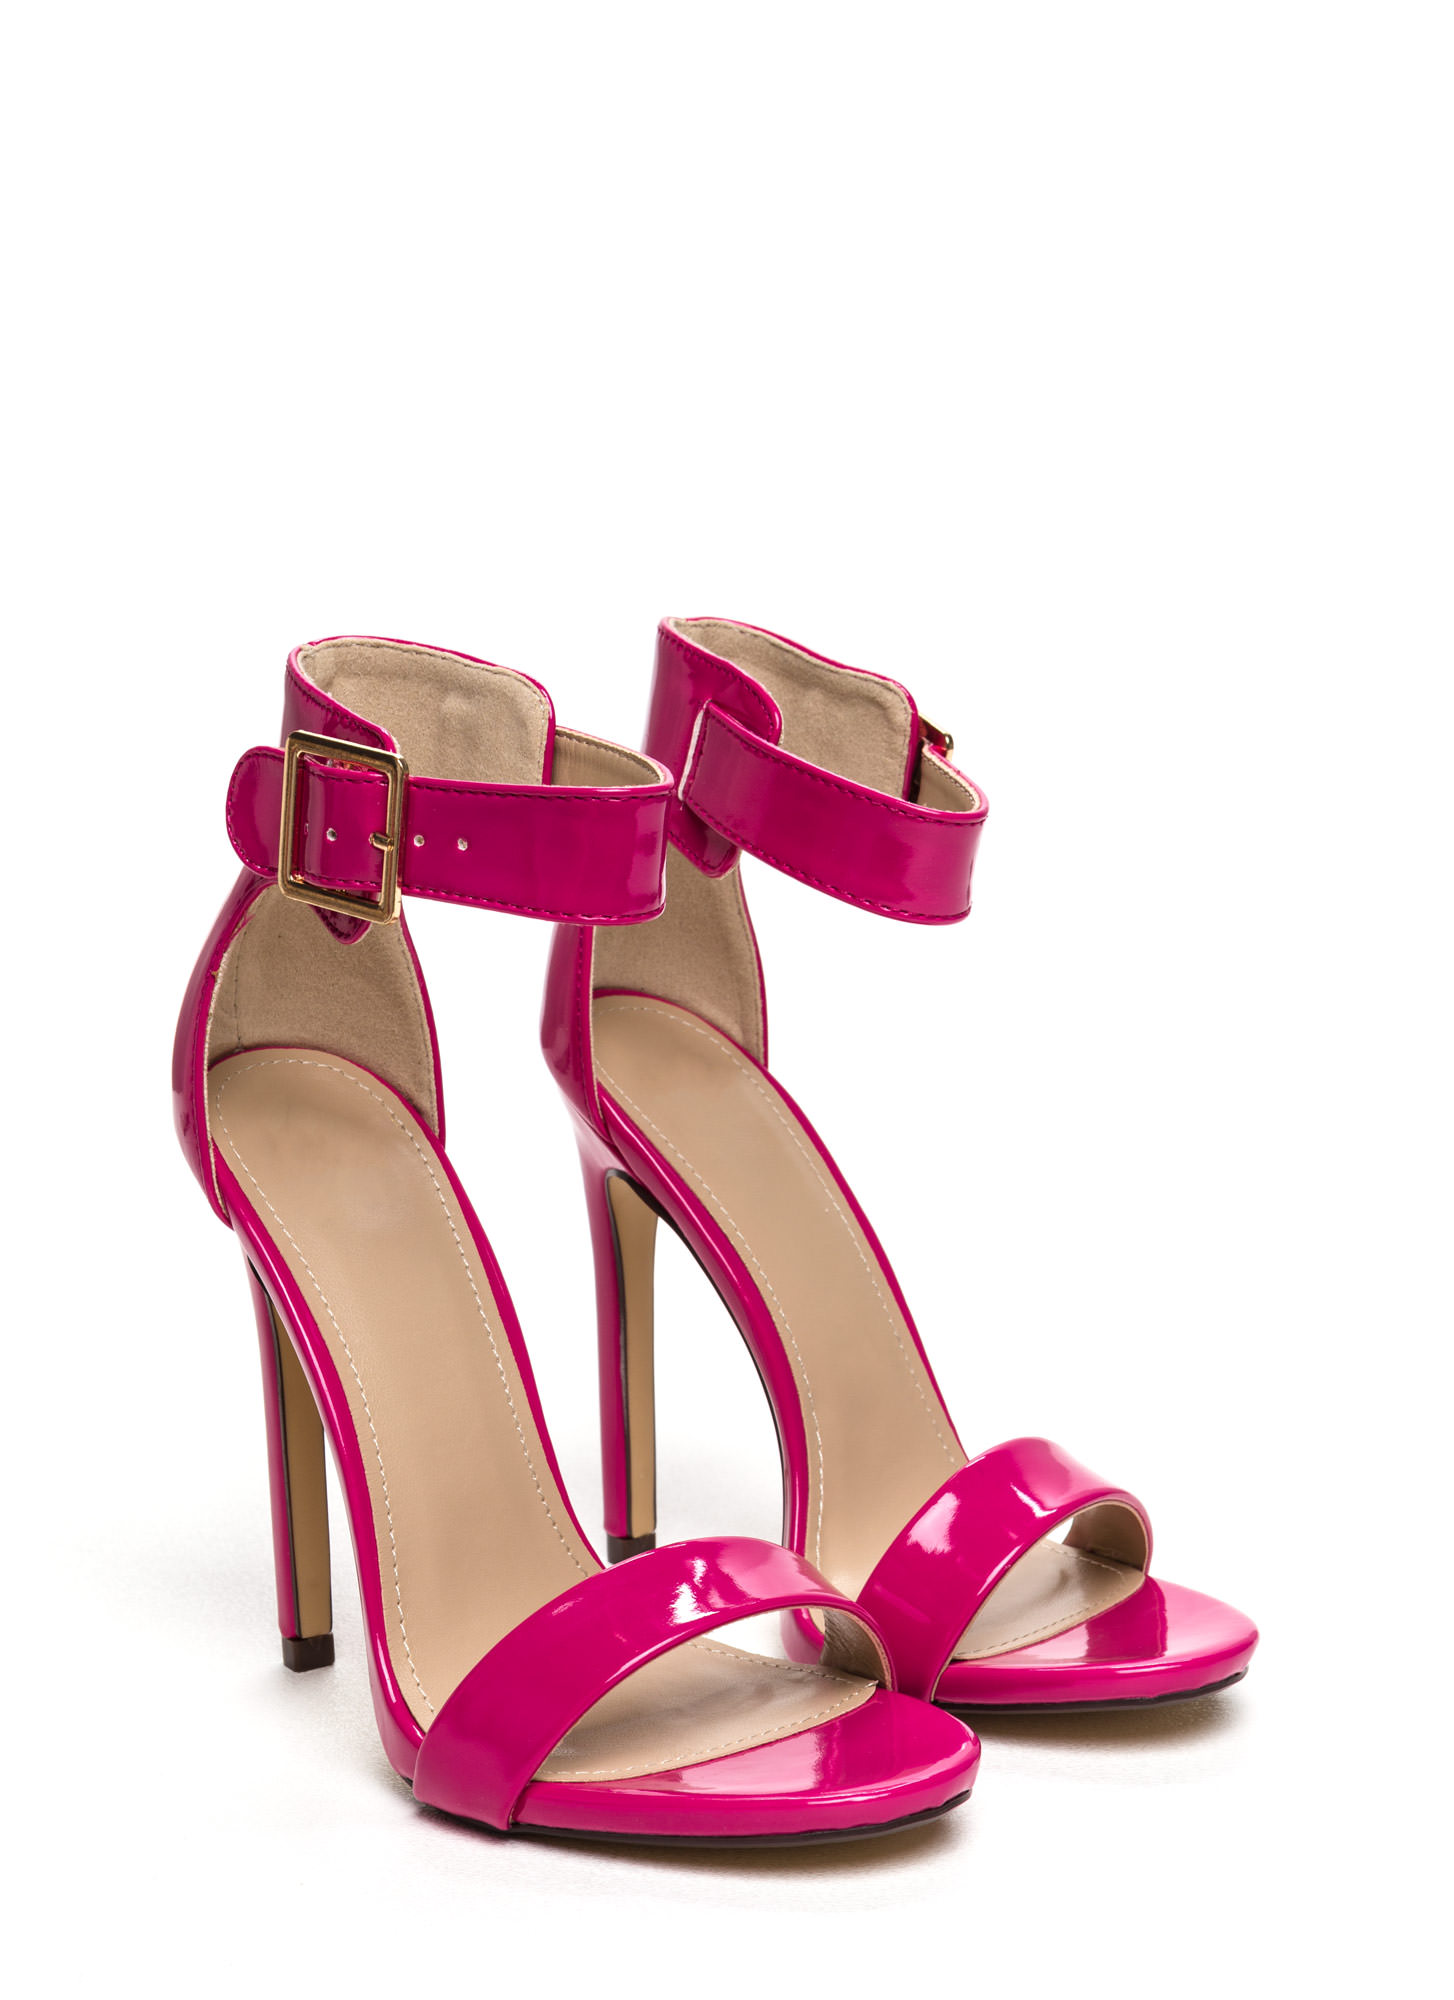 Strapped On Faux Patent Heels HOTPINK